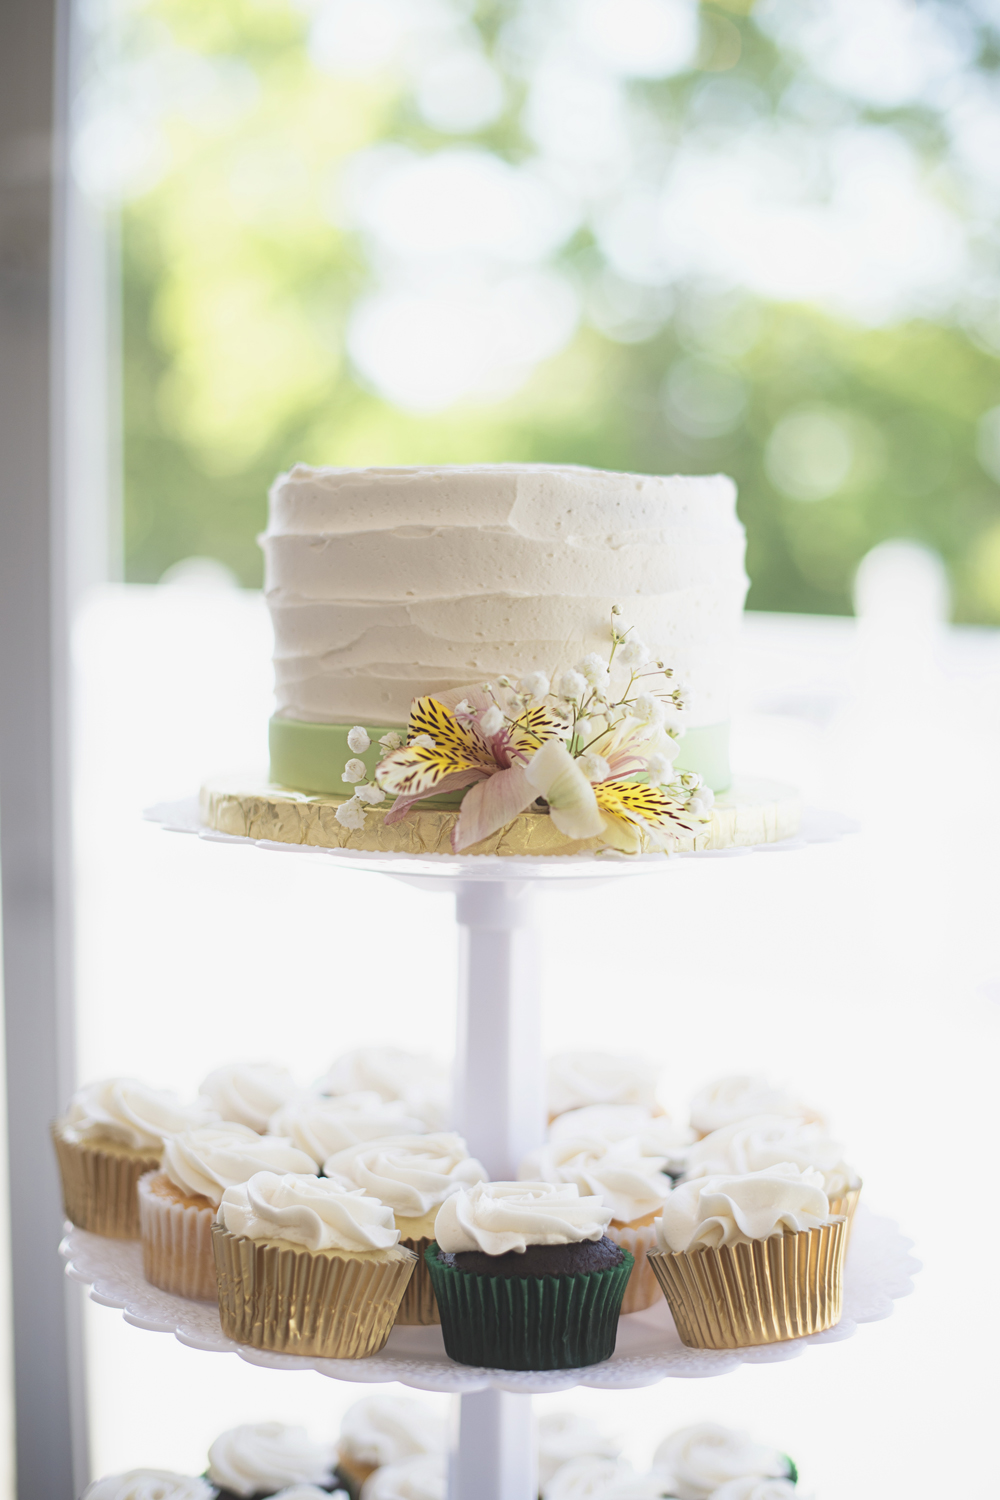 Ford's Colony Country Club in Williamsburg, Virginia | Wedding Cake & Cupcakes